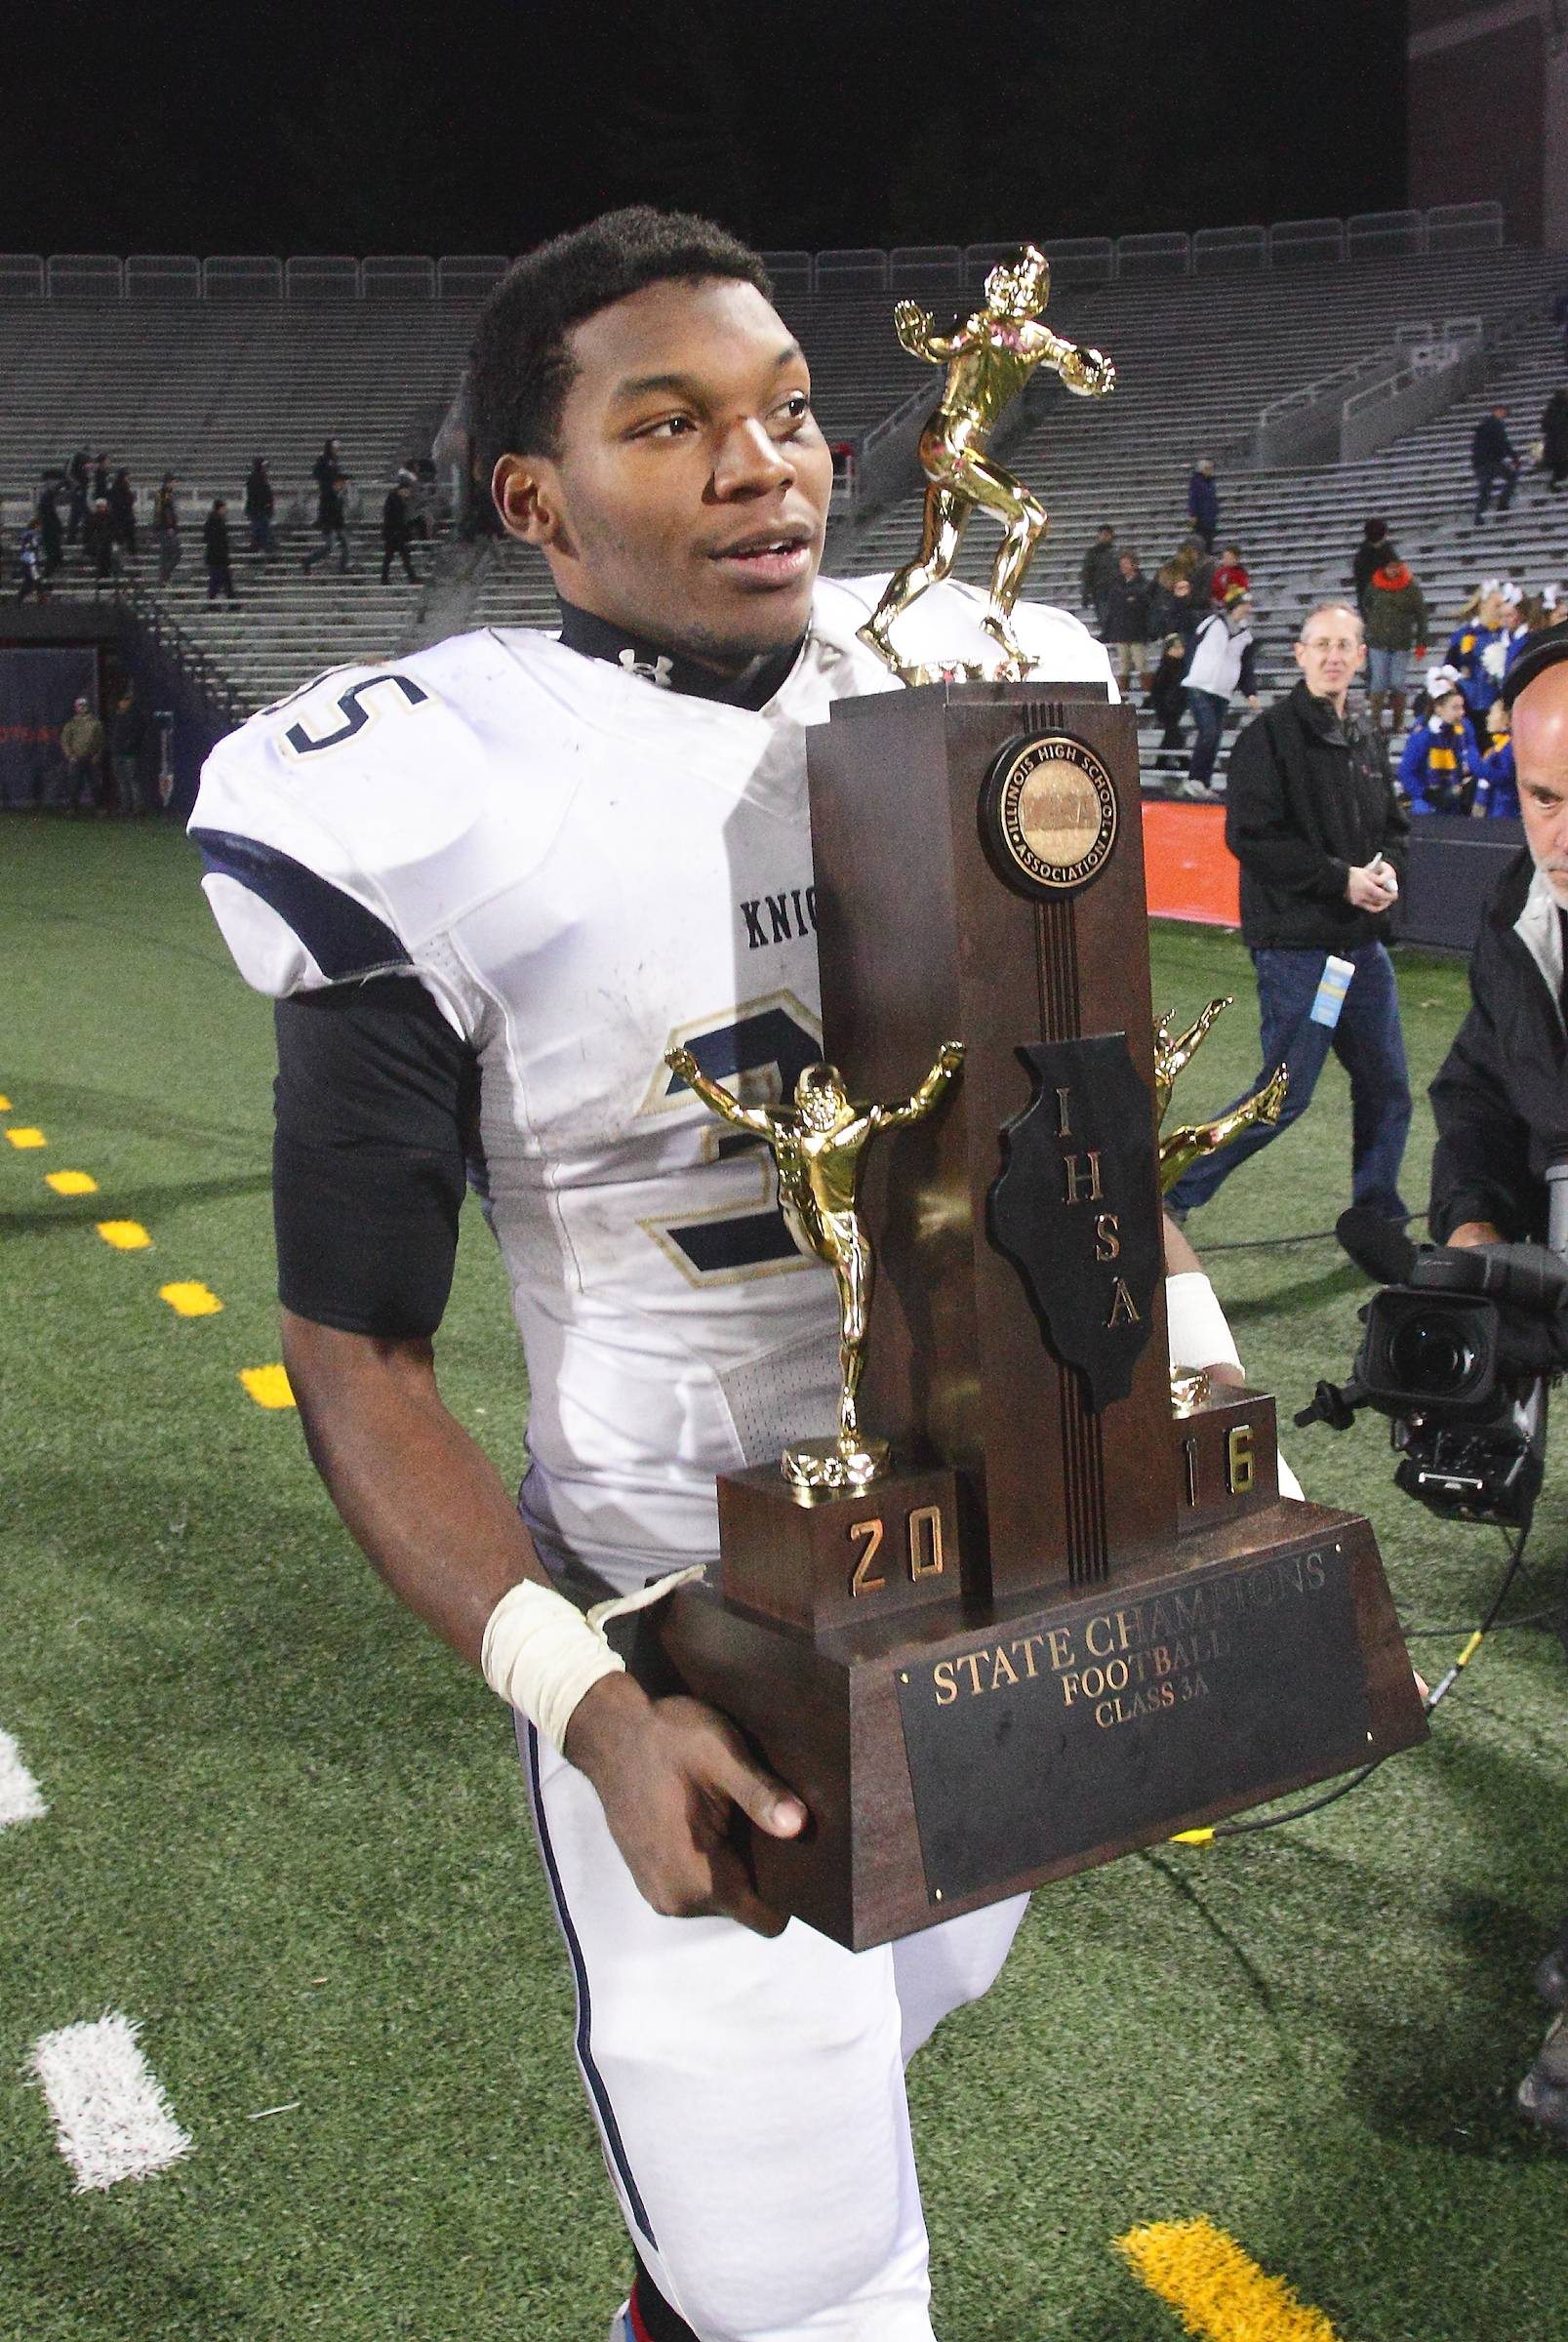 IC Catholic Prep's Jordan Rowell carries the team's championship trophy after the IHSA Class 3A football award ceremony. The Knights blanked the Cavaliers 43-0 to win this year's title.